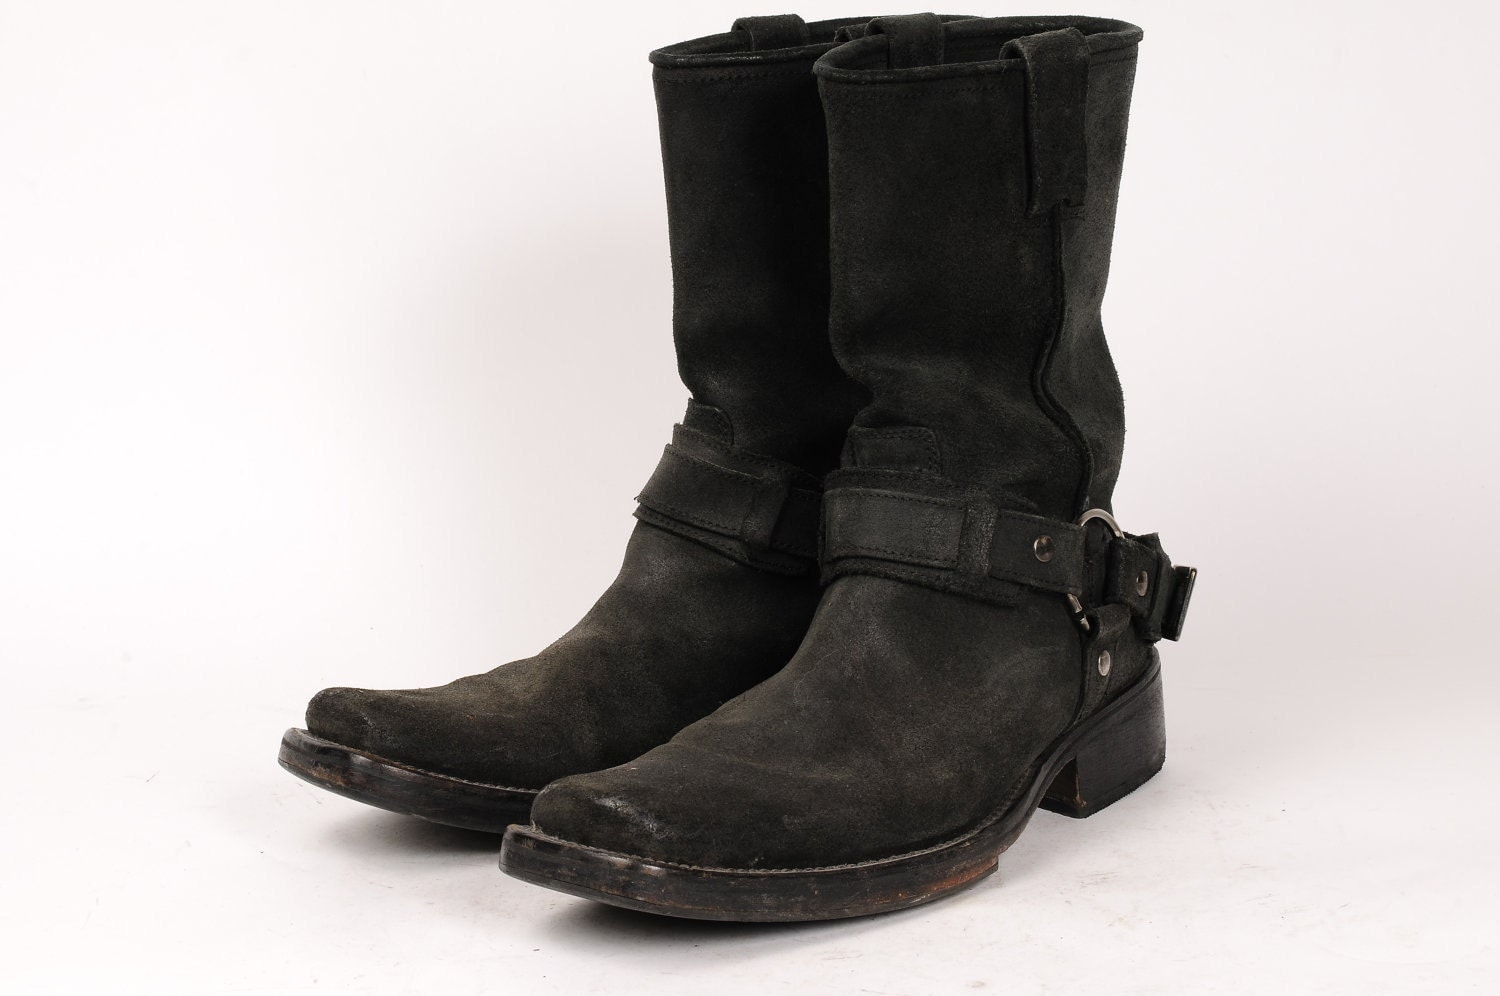 Mens Size 7 Black Suede Motorcycle Boots